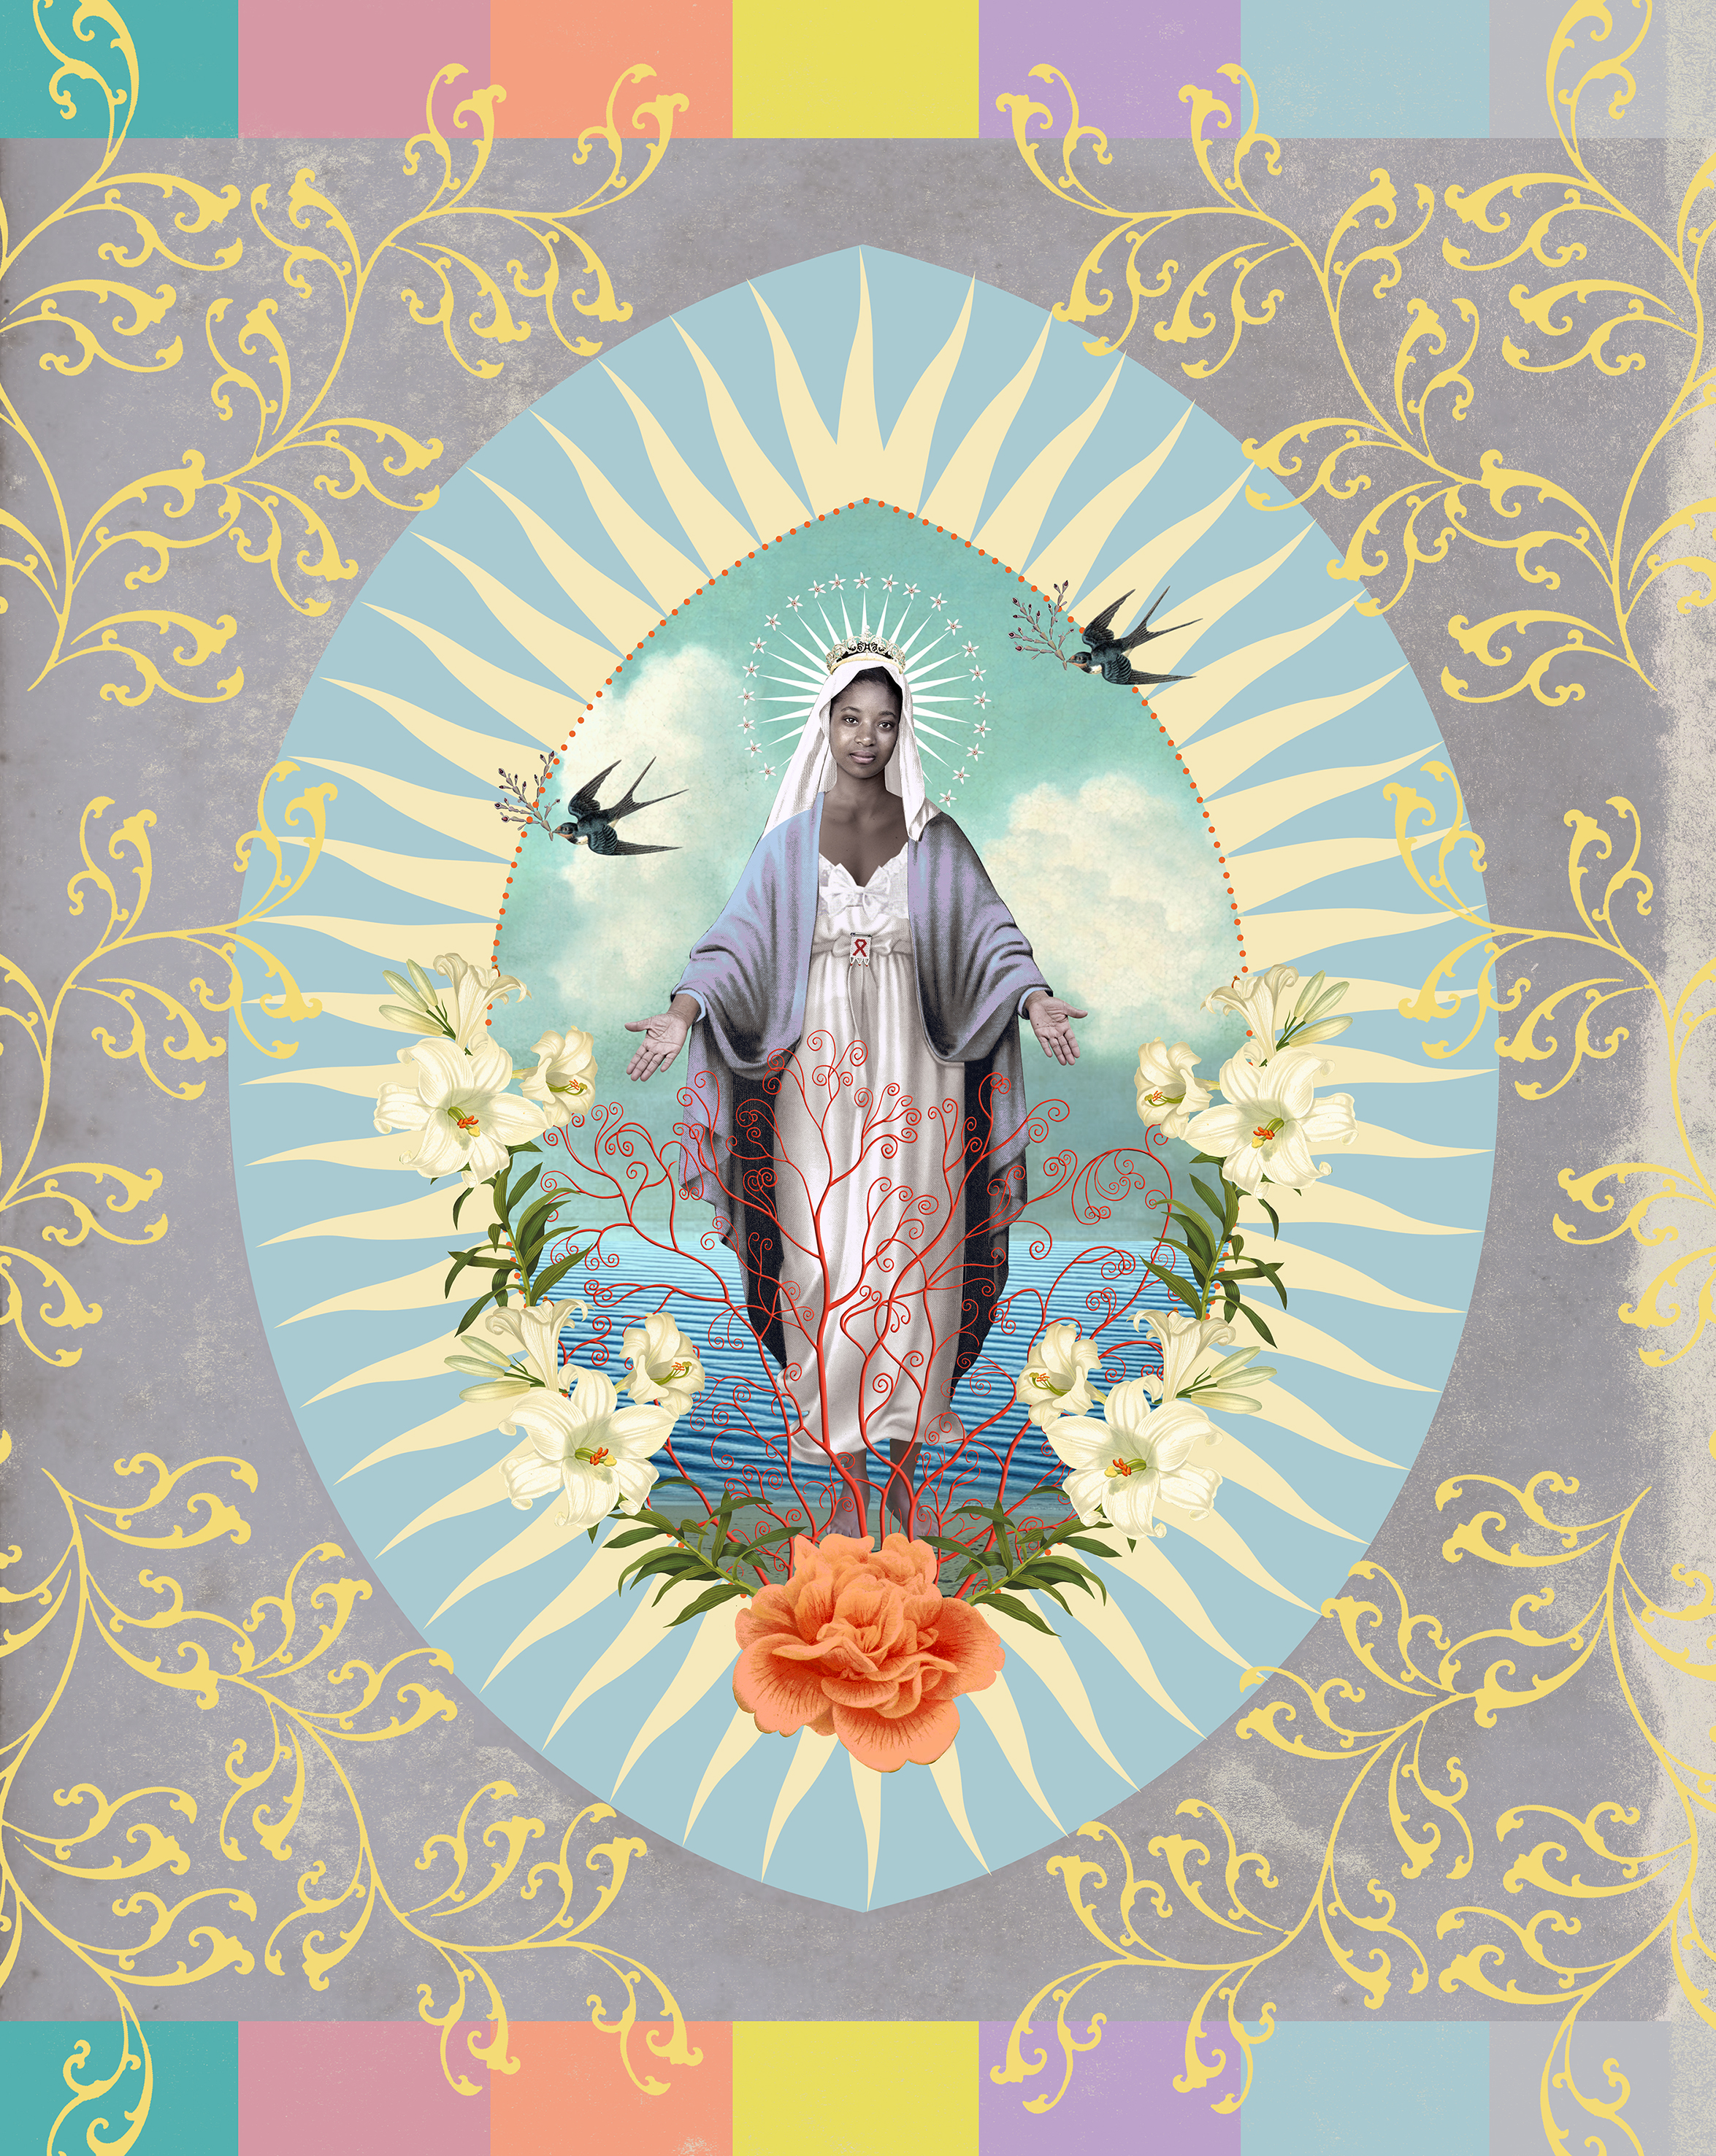 Our lady revisited